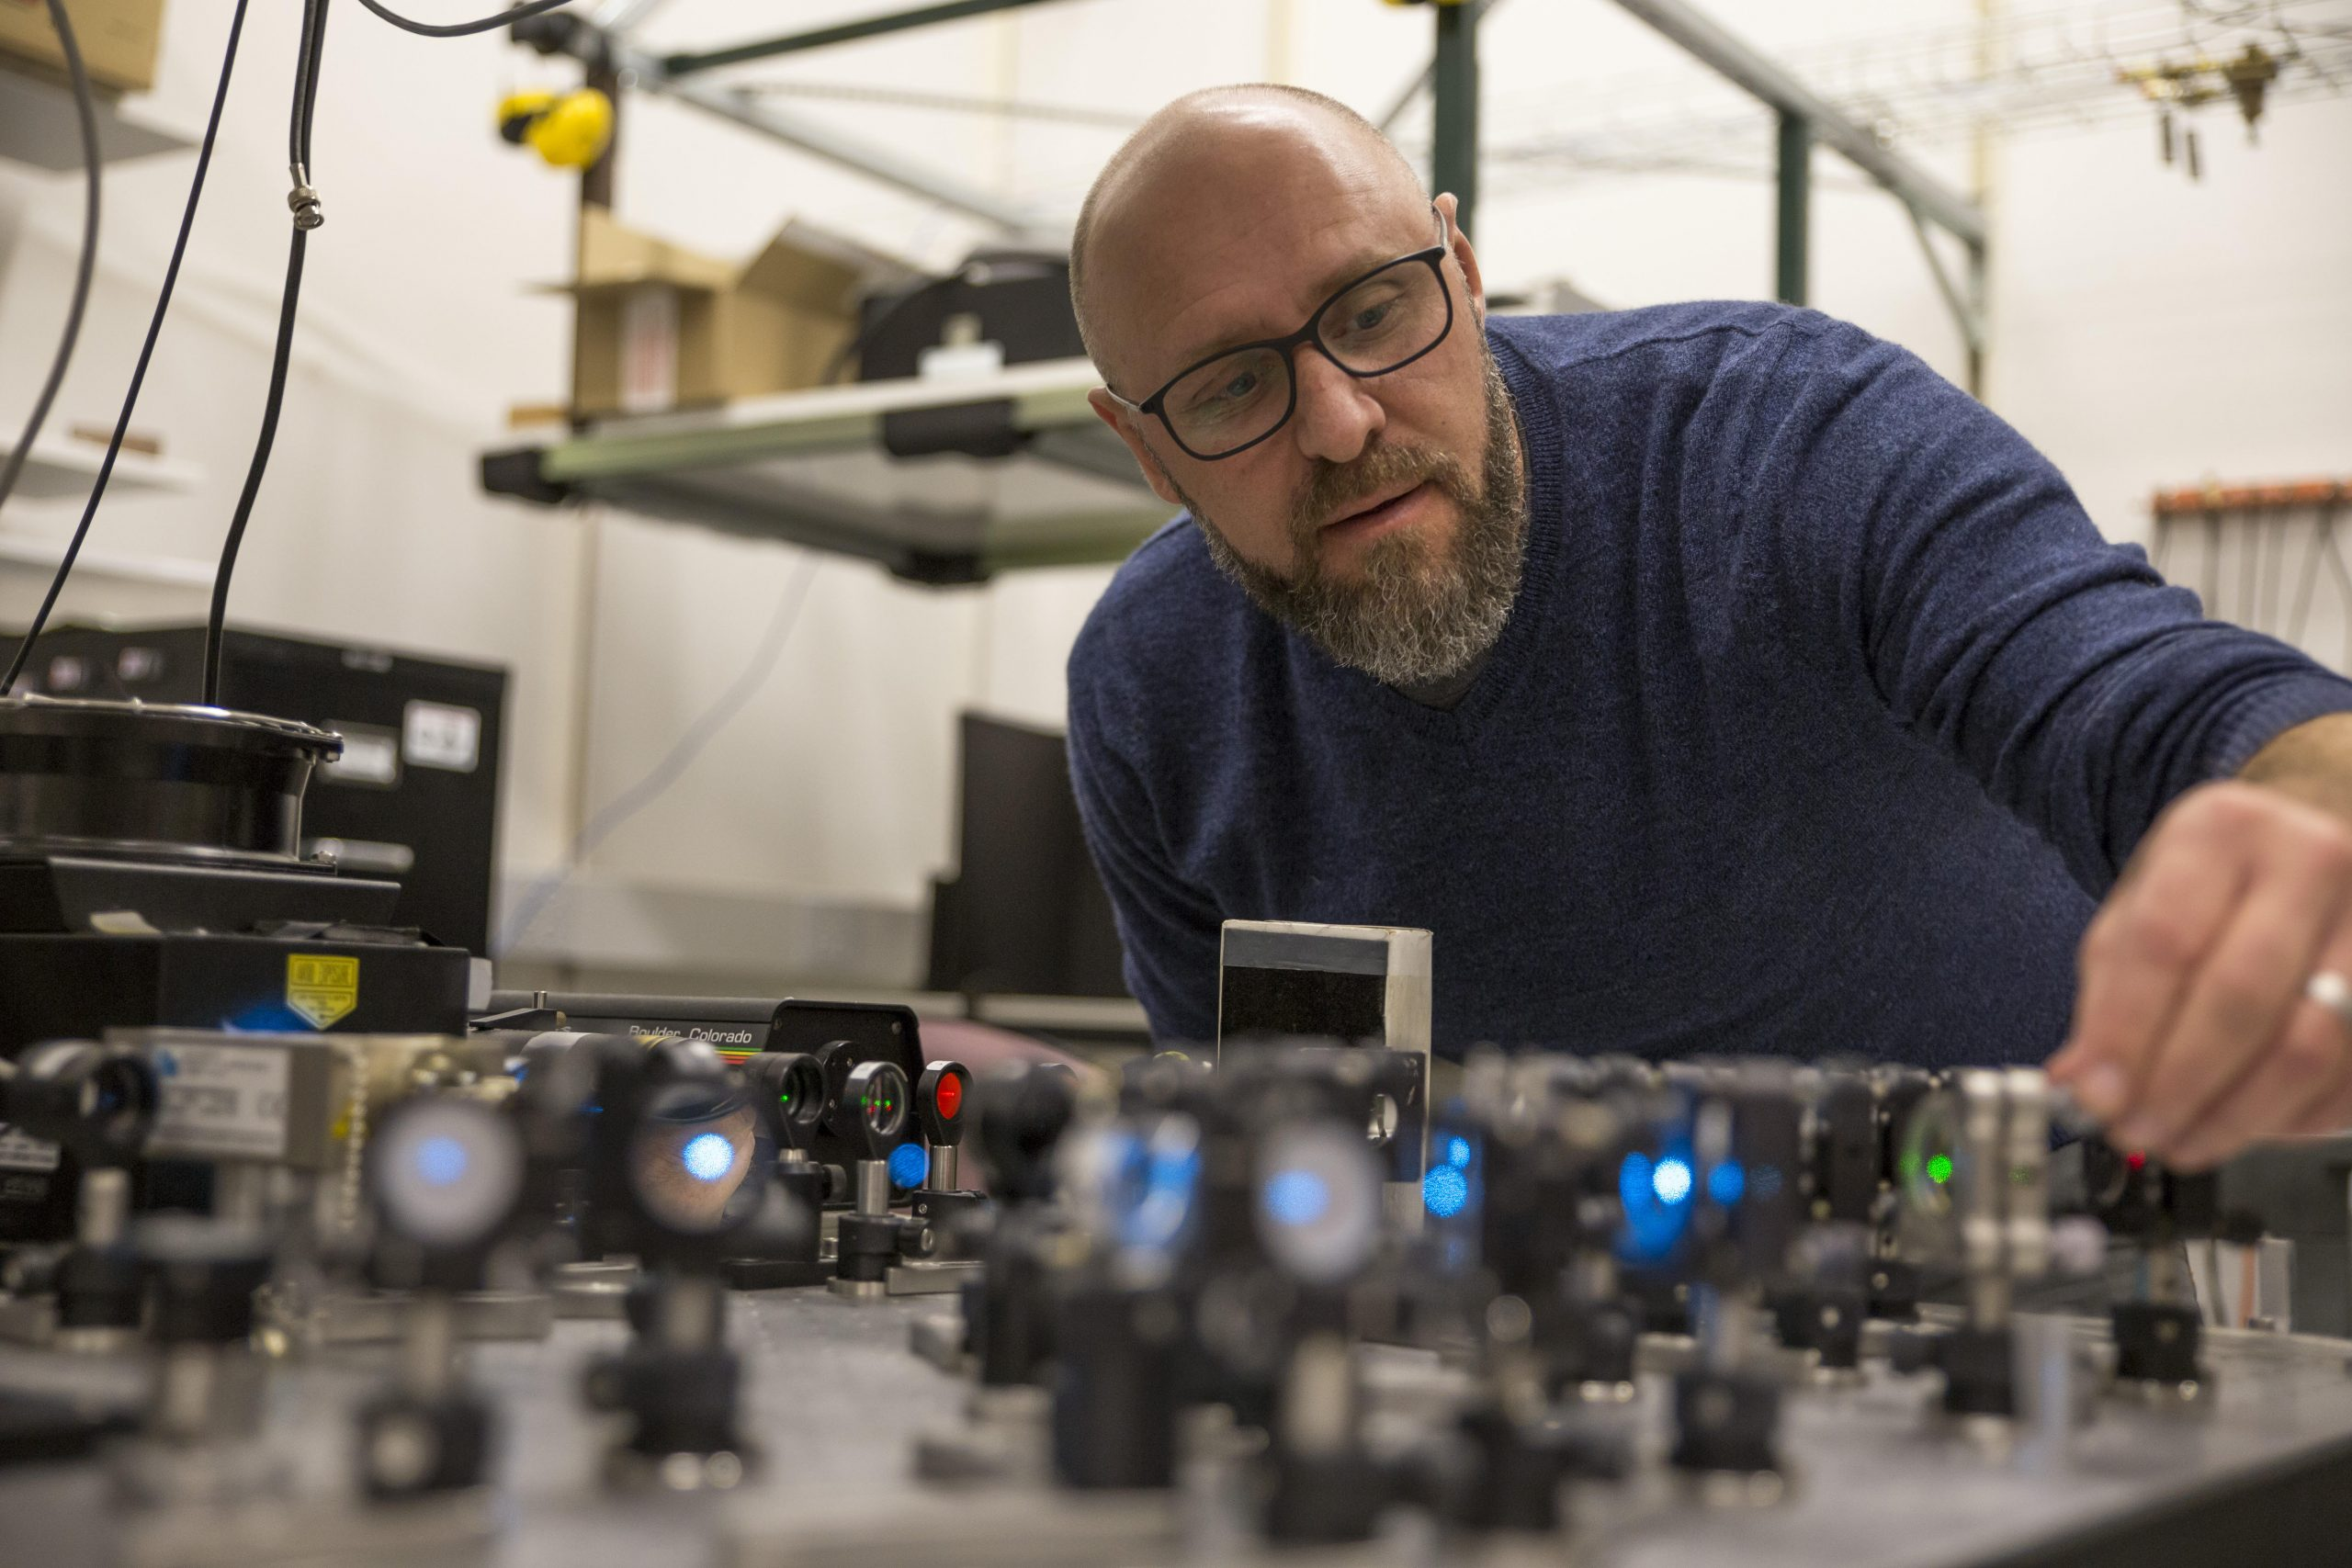 Jordan Gerton, a white male with a short-cropped beard and glasses, leans over an array of mirrors and lasers in his laboratory.